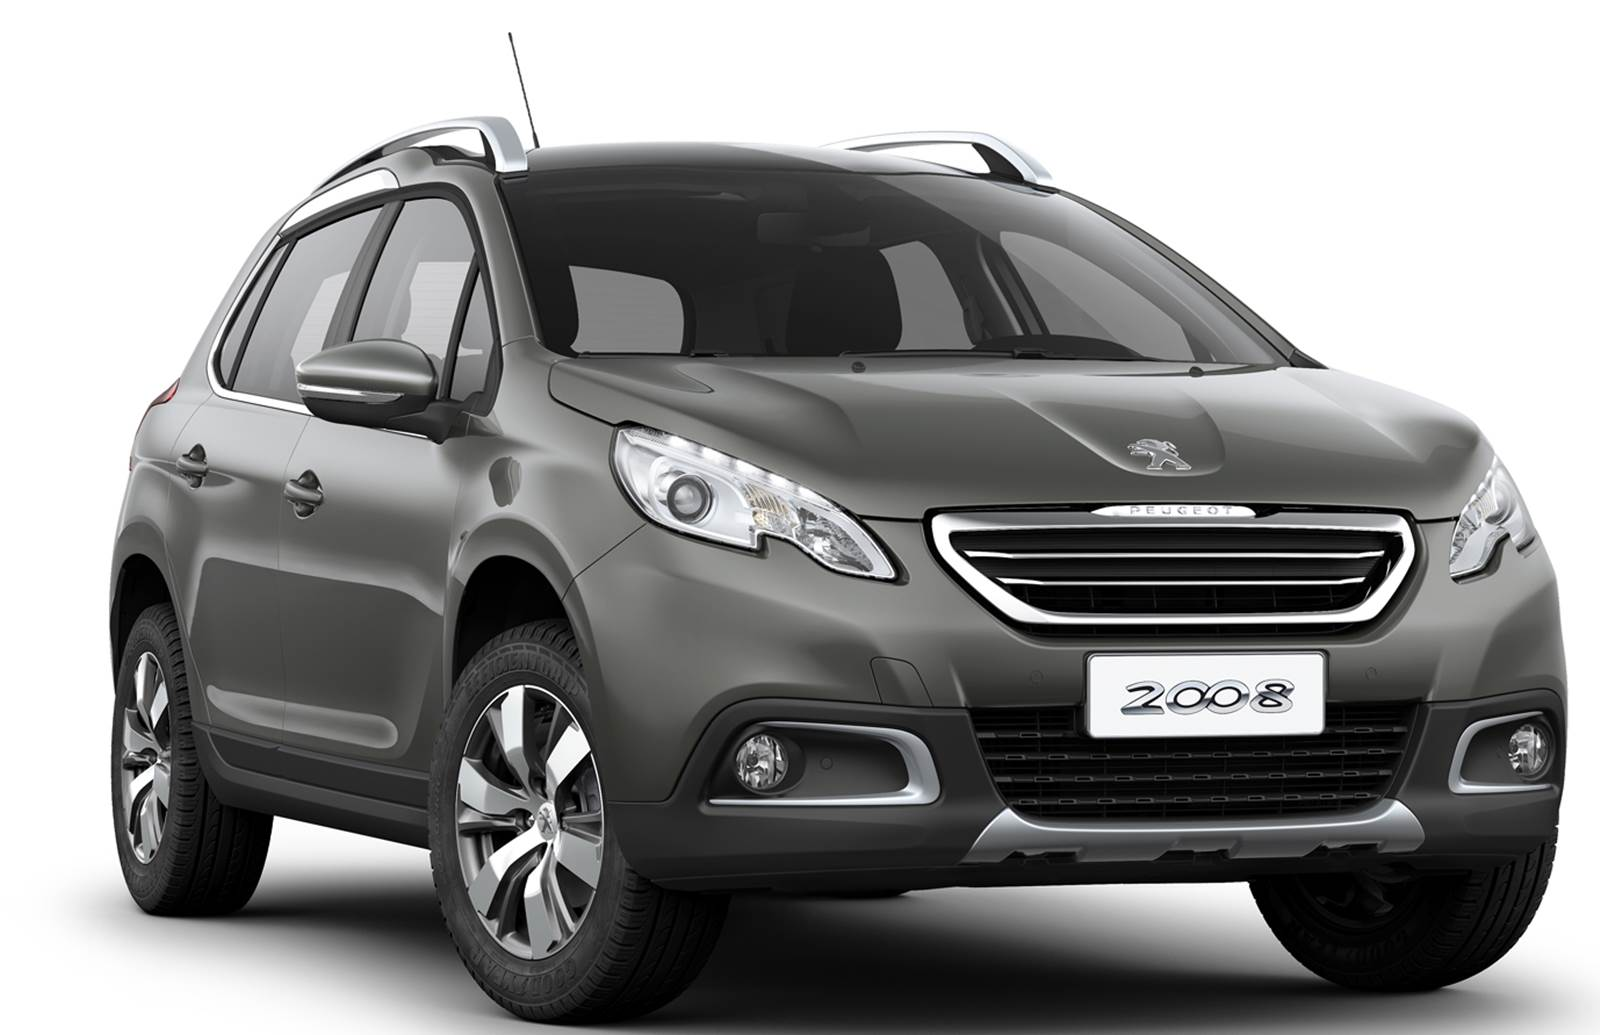 peugeot 2008 v deo consumo pre os e itens das vers es car blog br. Black Bedroom Furniture Sets. Home Design Ideas